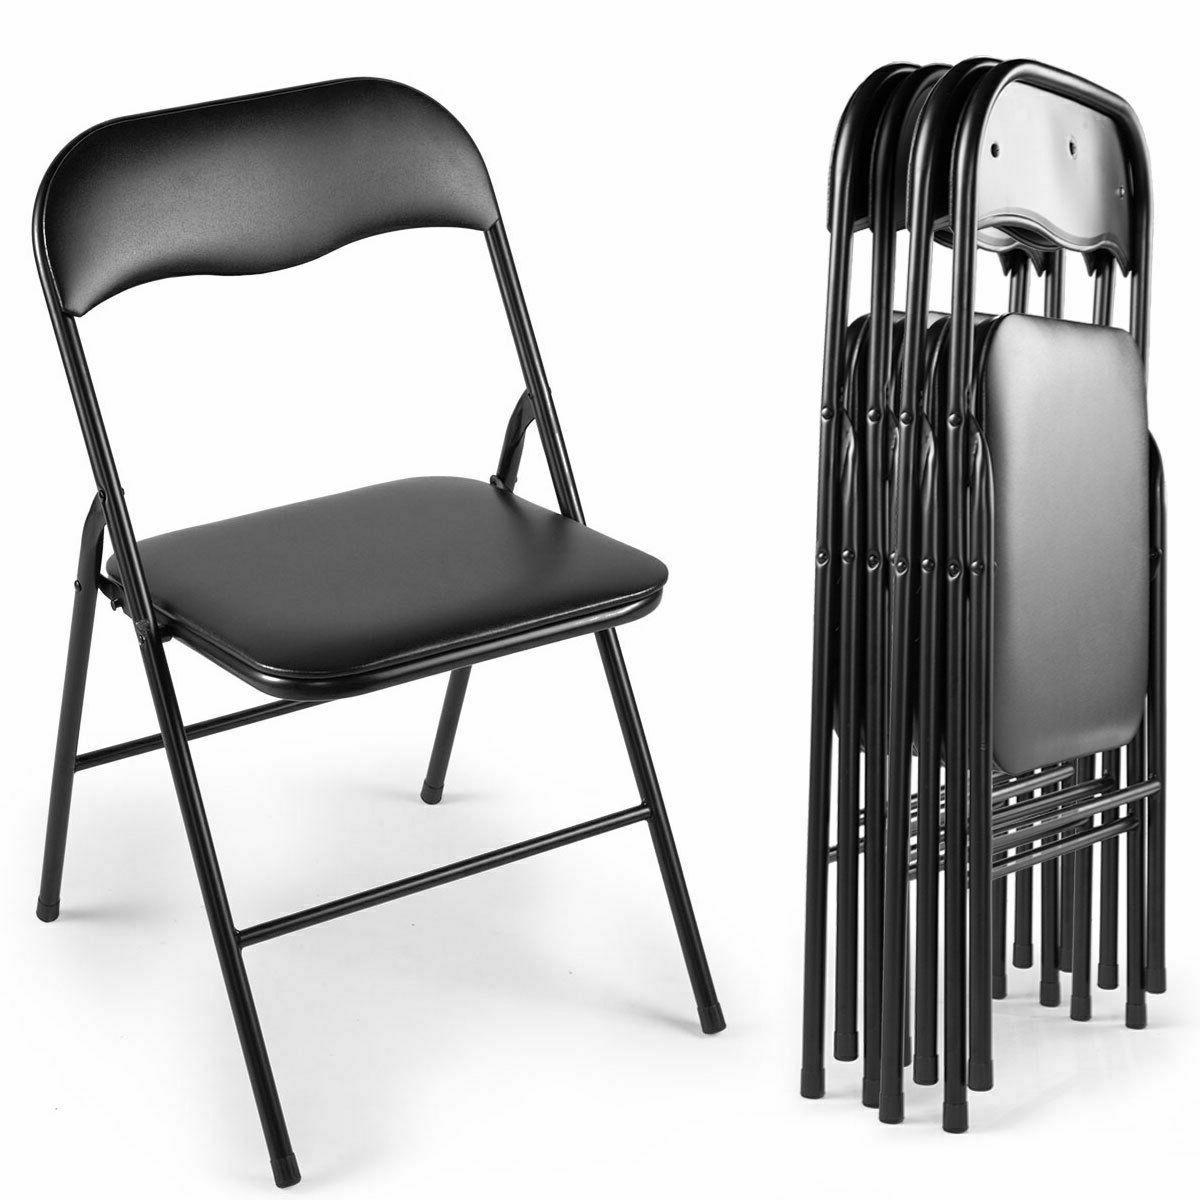 commercial black plastic folding chairs 4 5